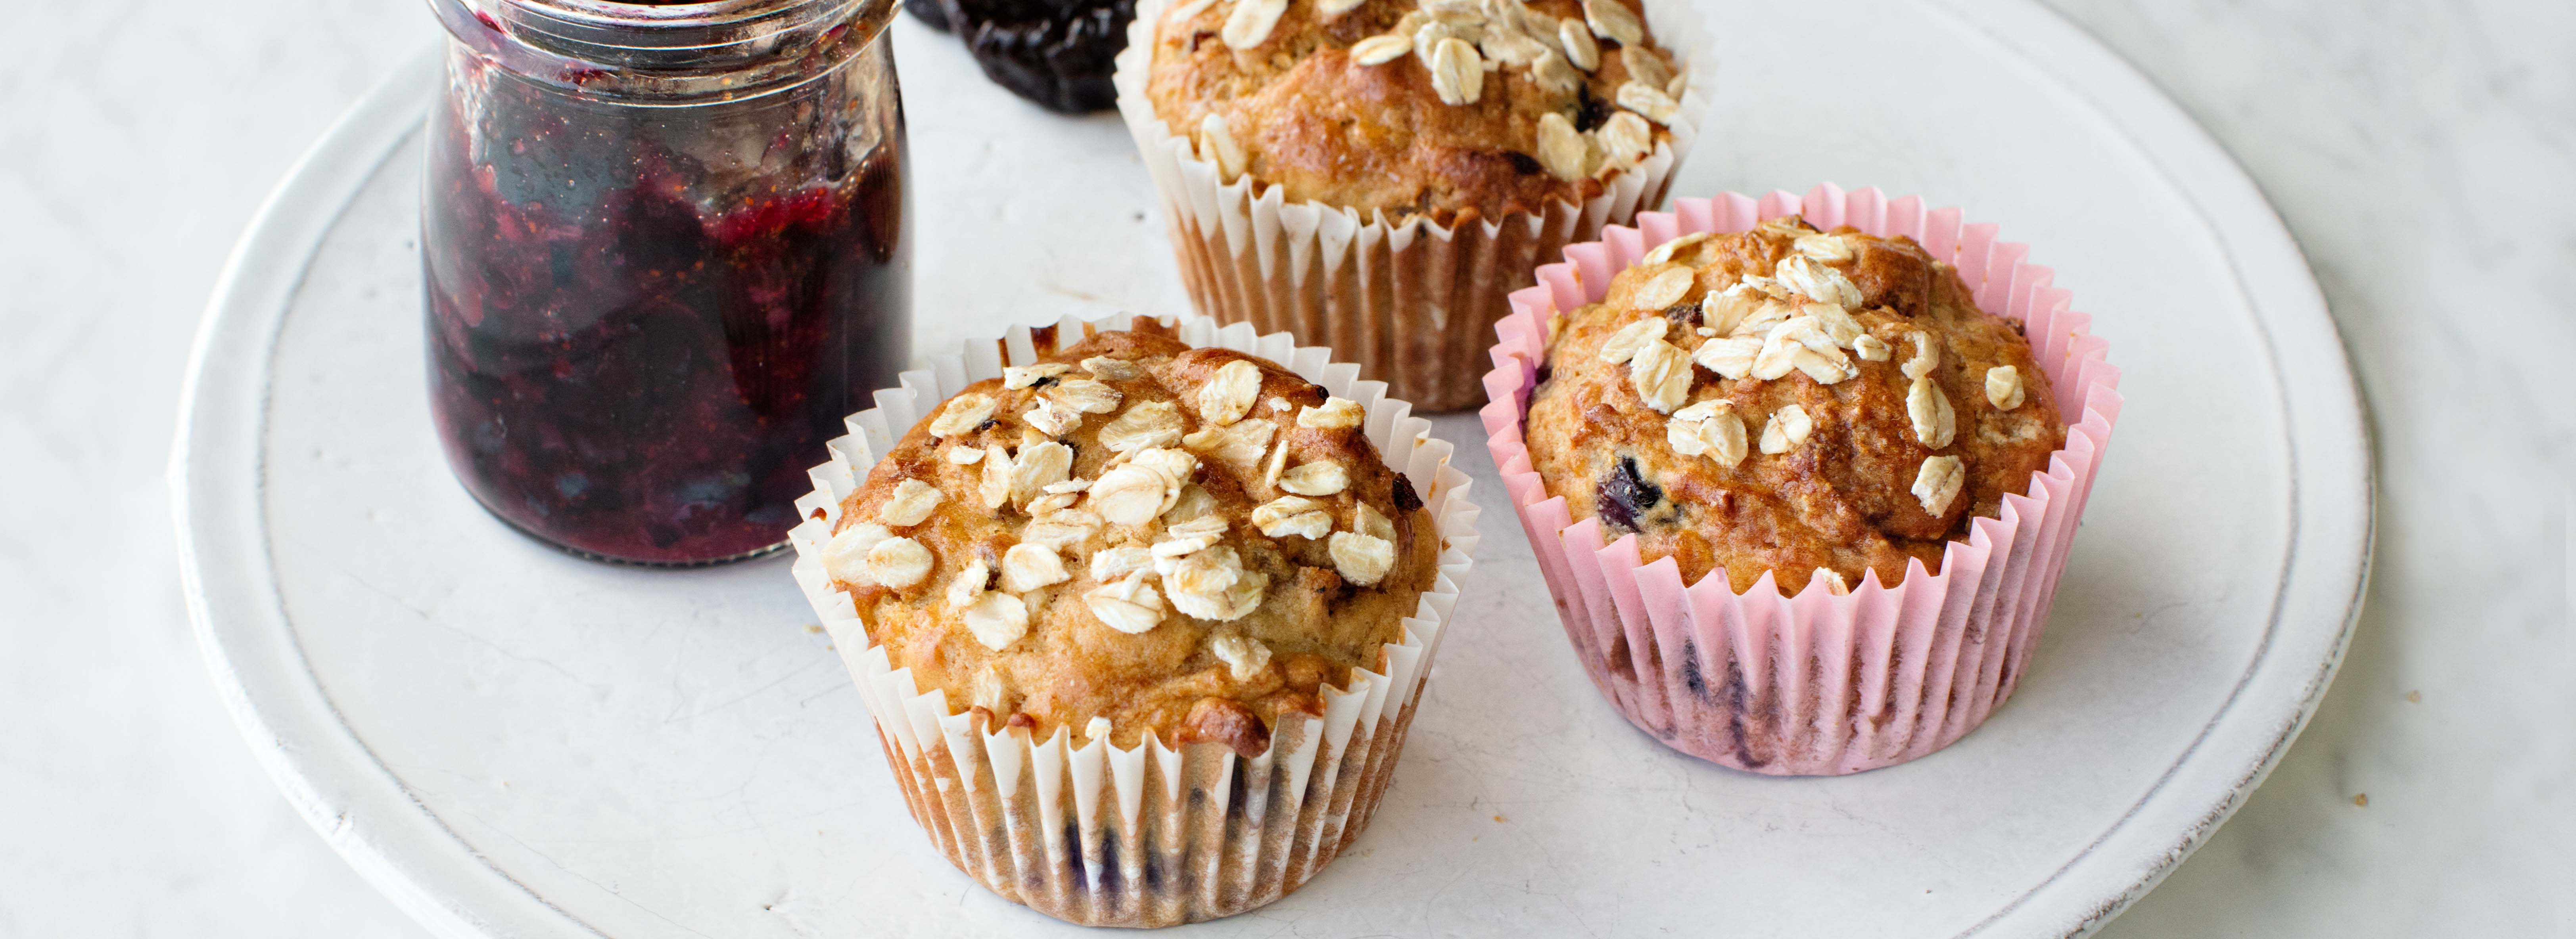 <p>Because prunes provide a greater depth of sweetness, these muffins have less sugar. Yogurt lightens the crumb and provides a small amount of tanginess. Compared with the original recipe, the sugar has been reduced by 57%, the butter by 40%, and the flour by 9%.</p>